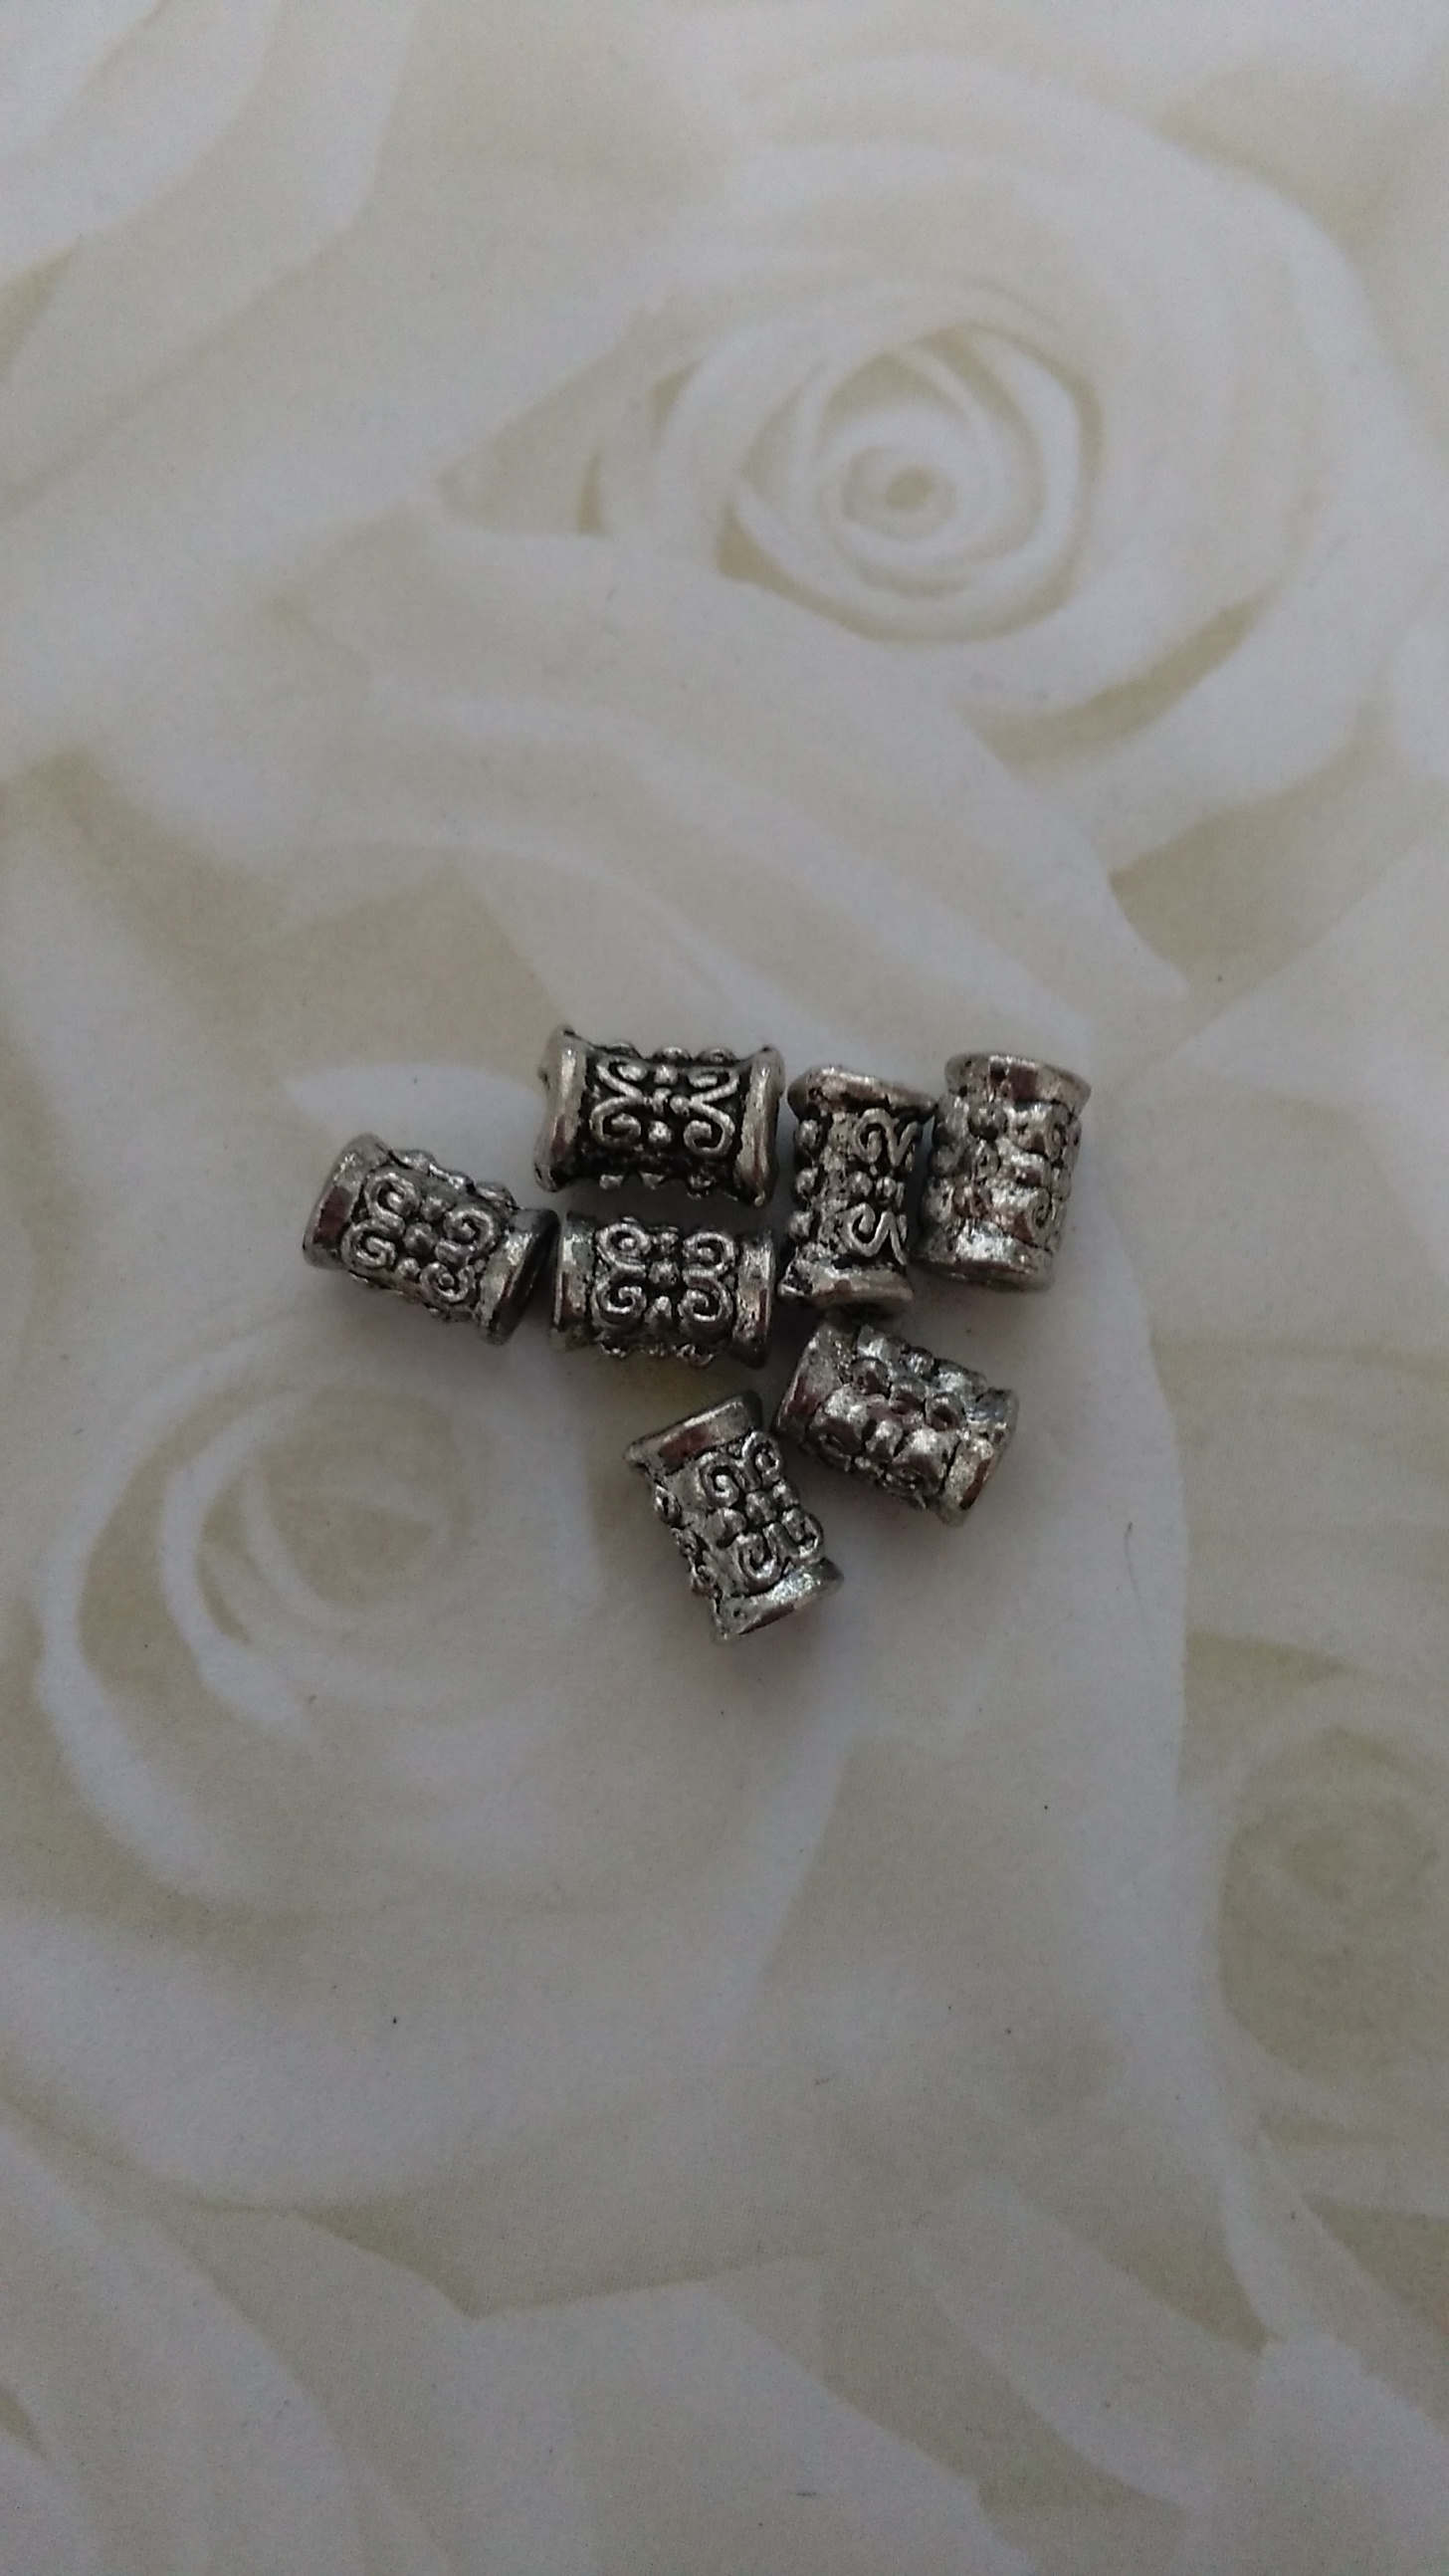 Tibetan Silver Ornate Bead